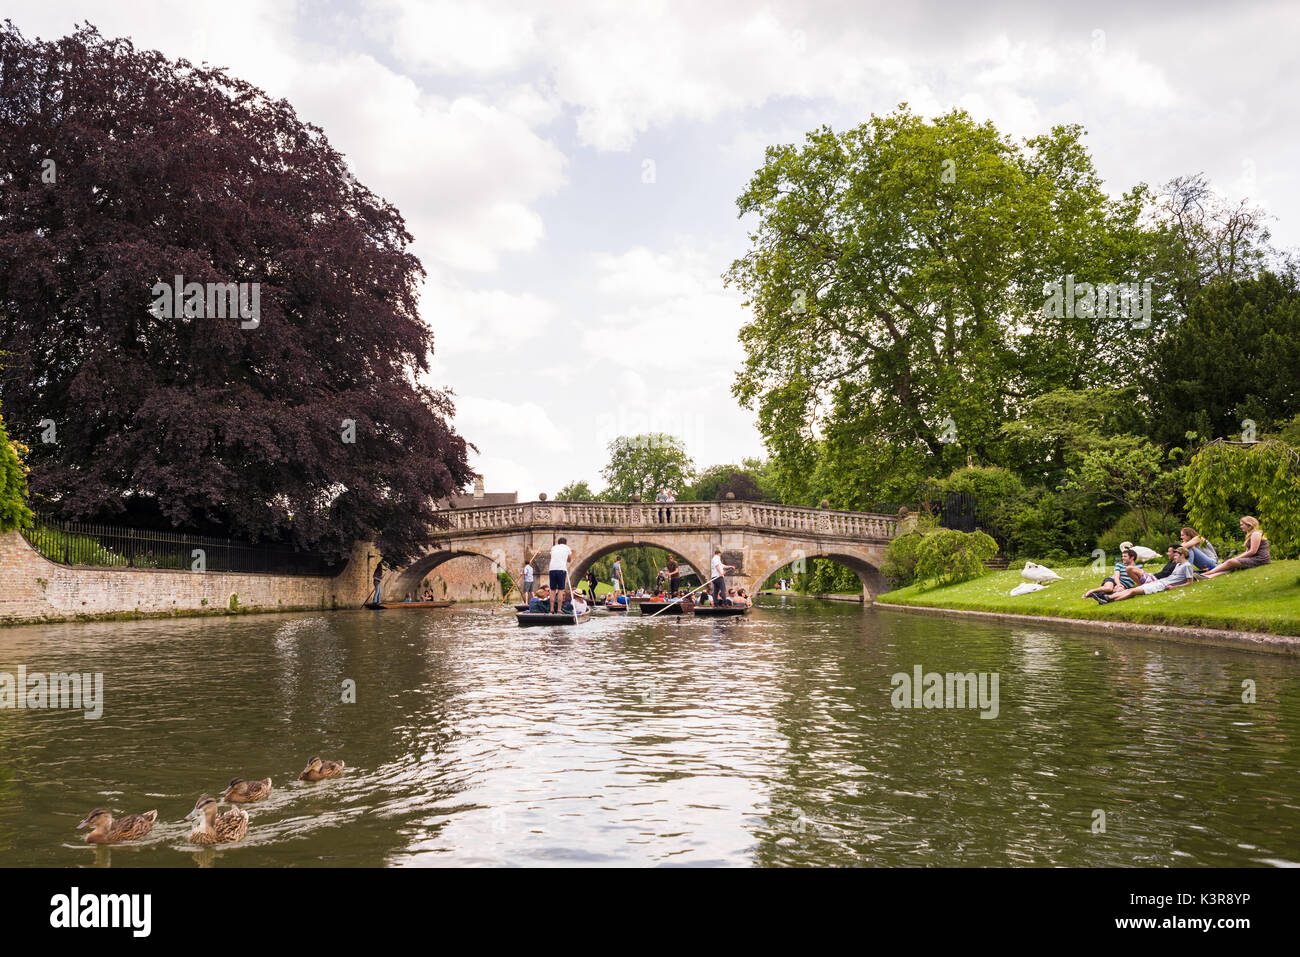 People punting on the river Cam by Clare College University during Summer, Cambridge, United Kingdom Stock Photo